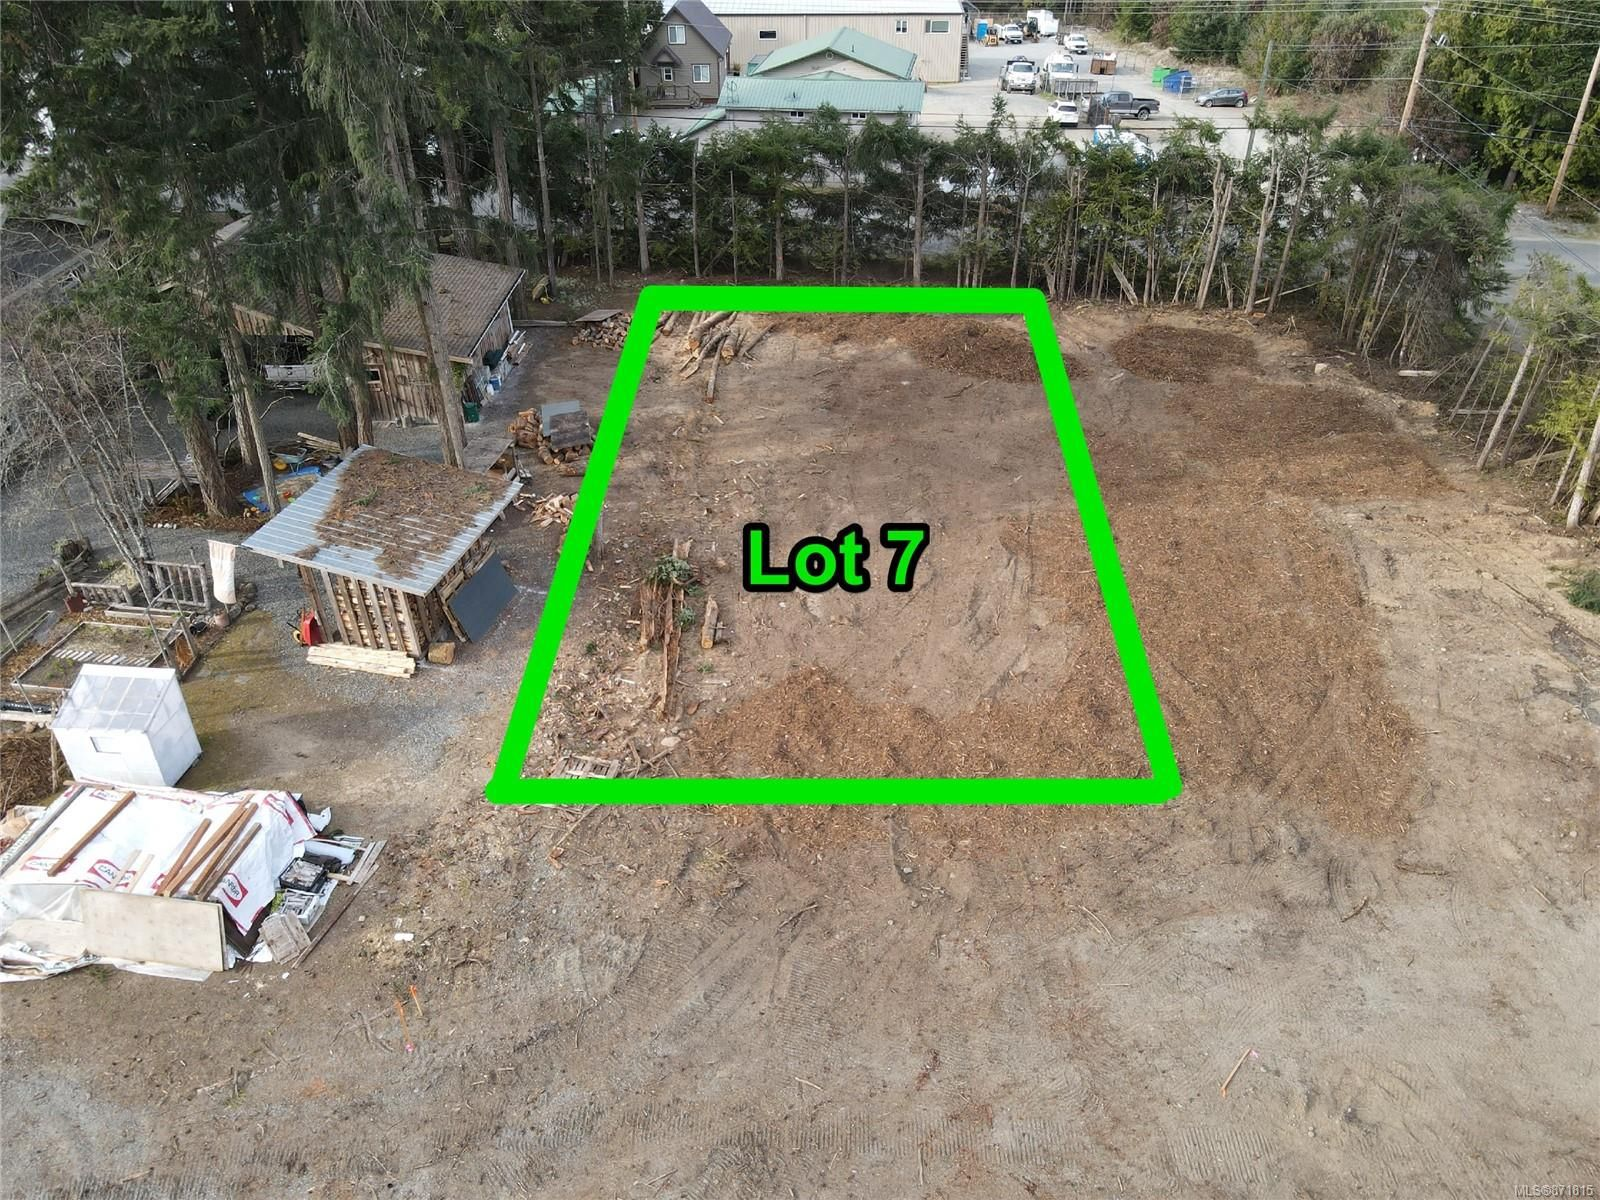 Main Photo: 7 Allsbrook Rd in : PQ Errington/Coombs/Hilliers Land for sale (Parksville/Qualicum)  : MLS®# 871815